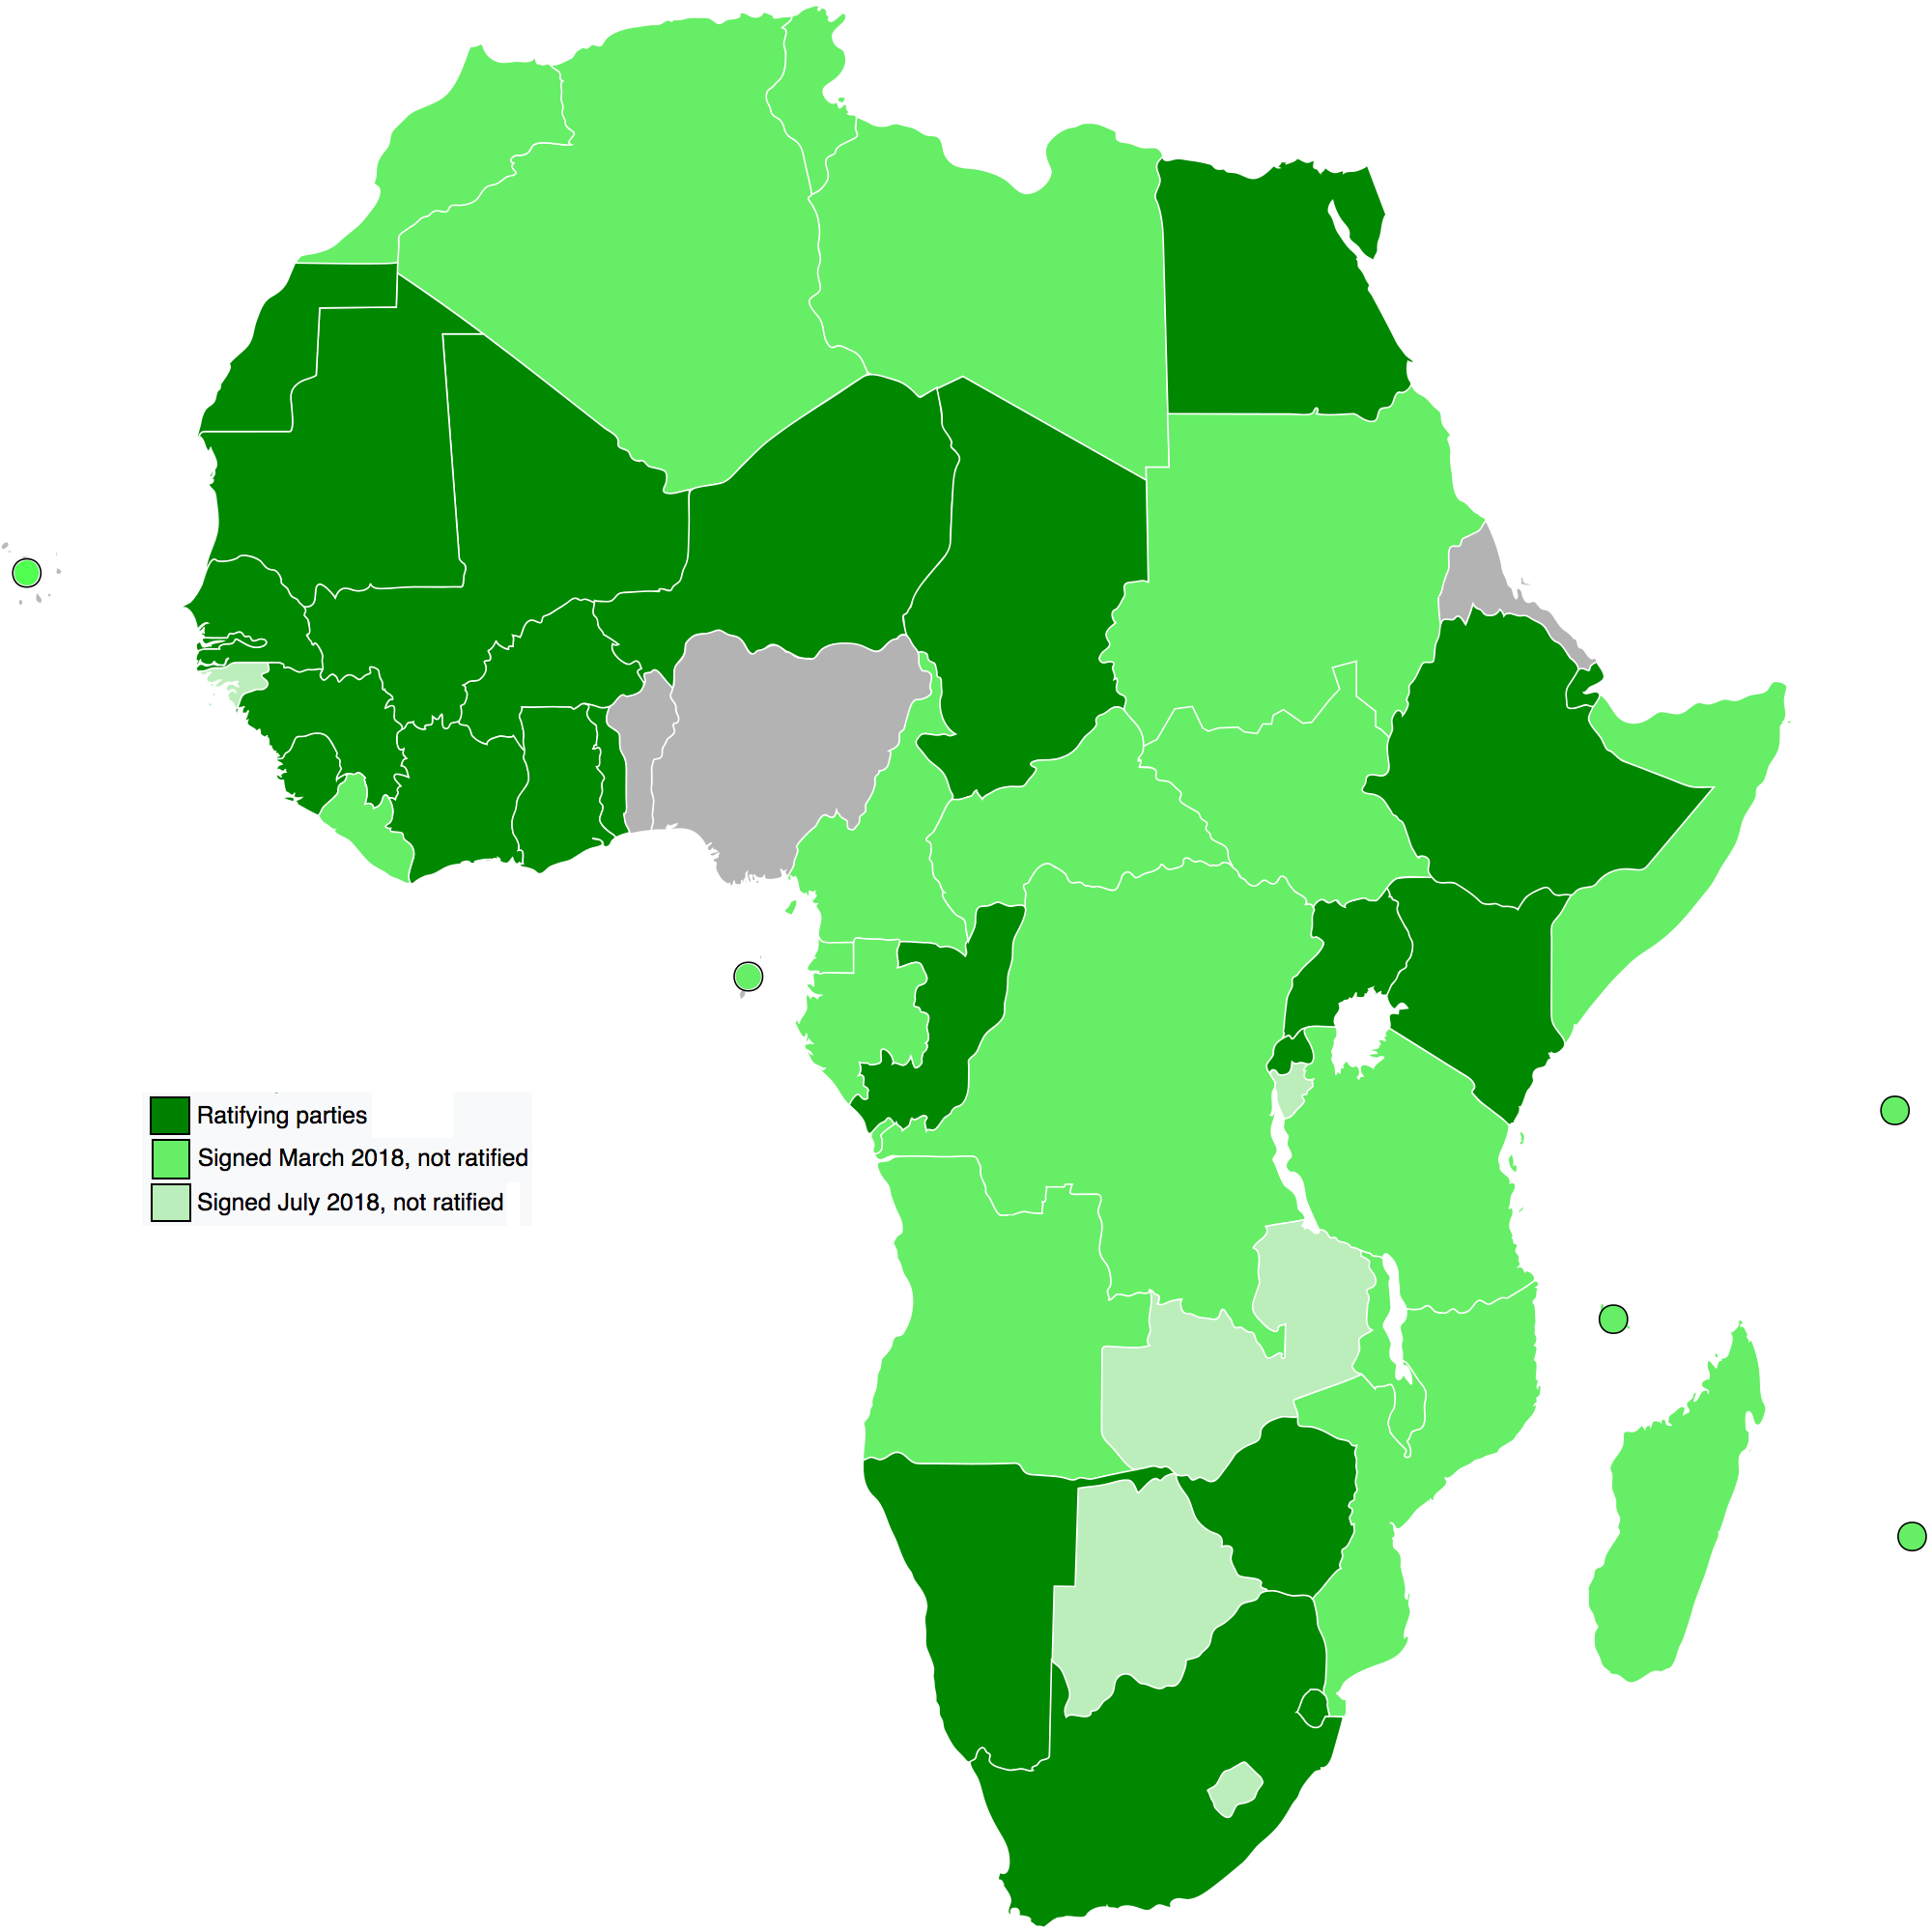 Africa - African Continental Free Trade Agreement (AfCFTA)